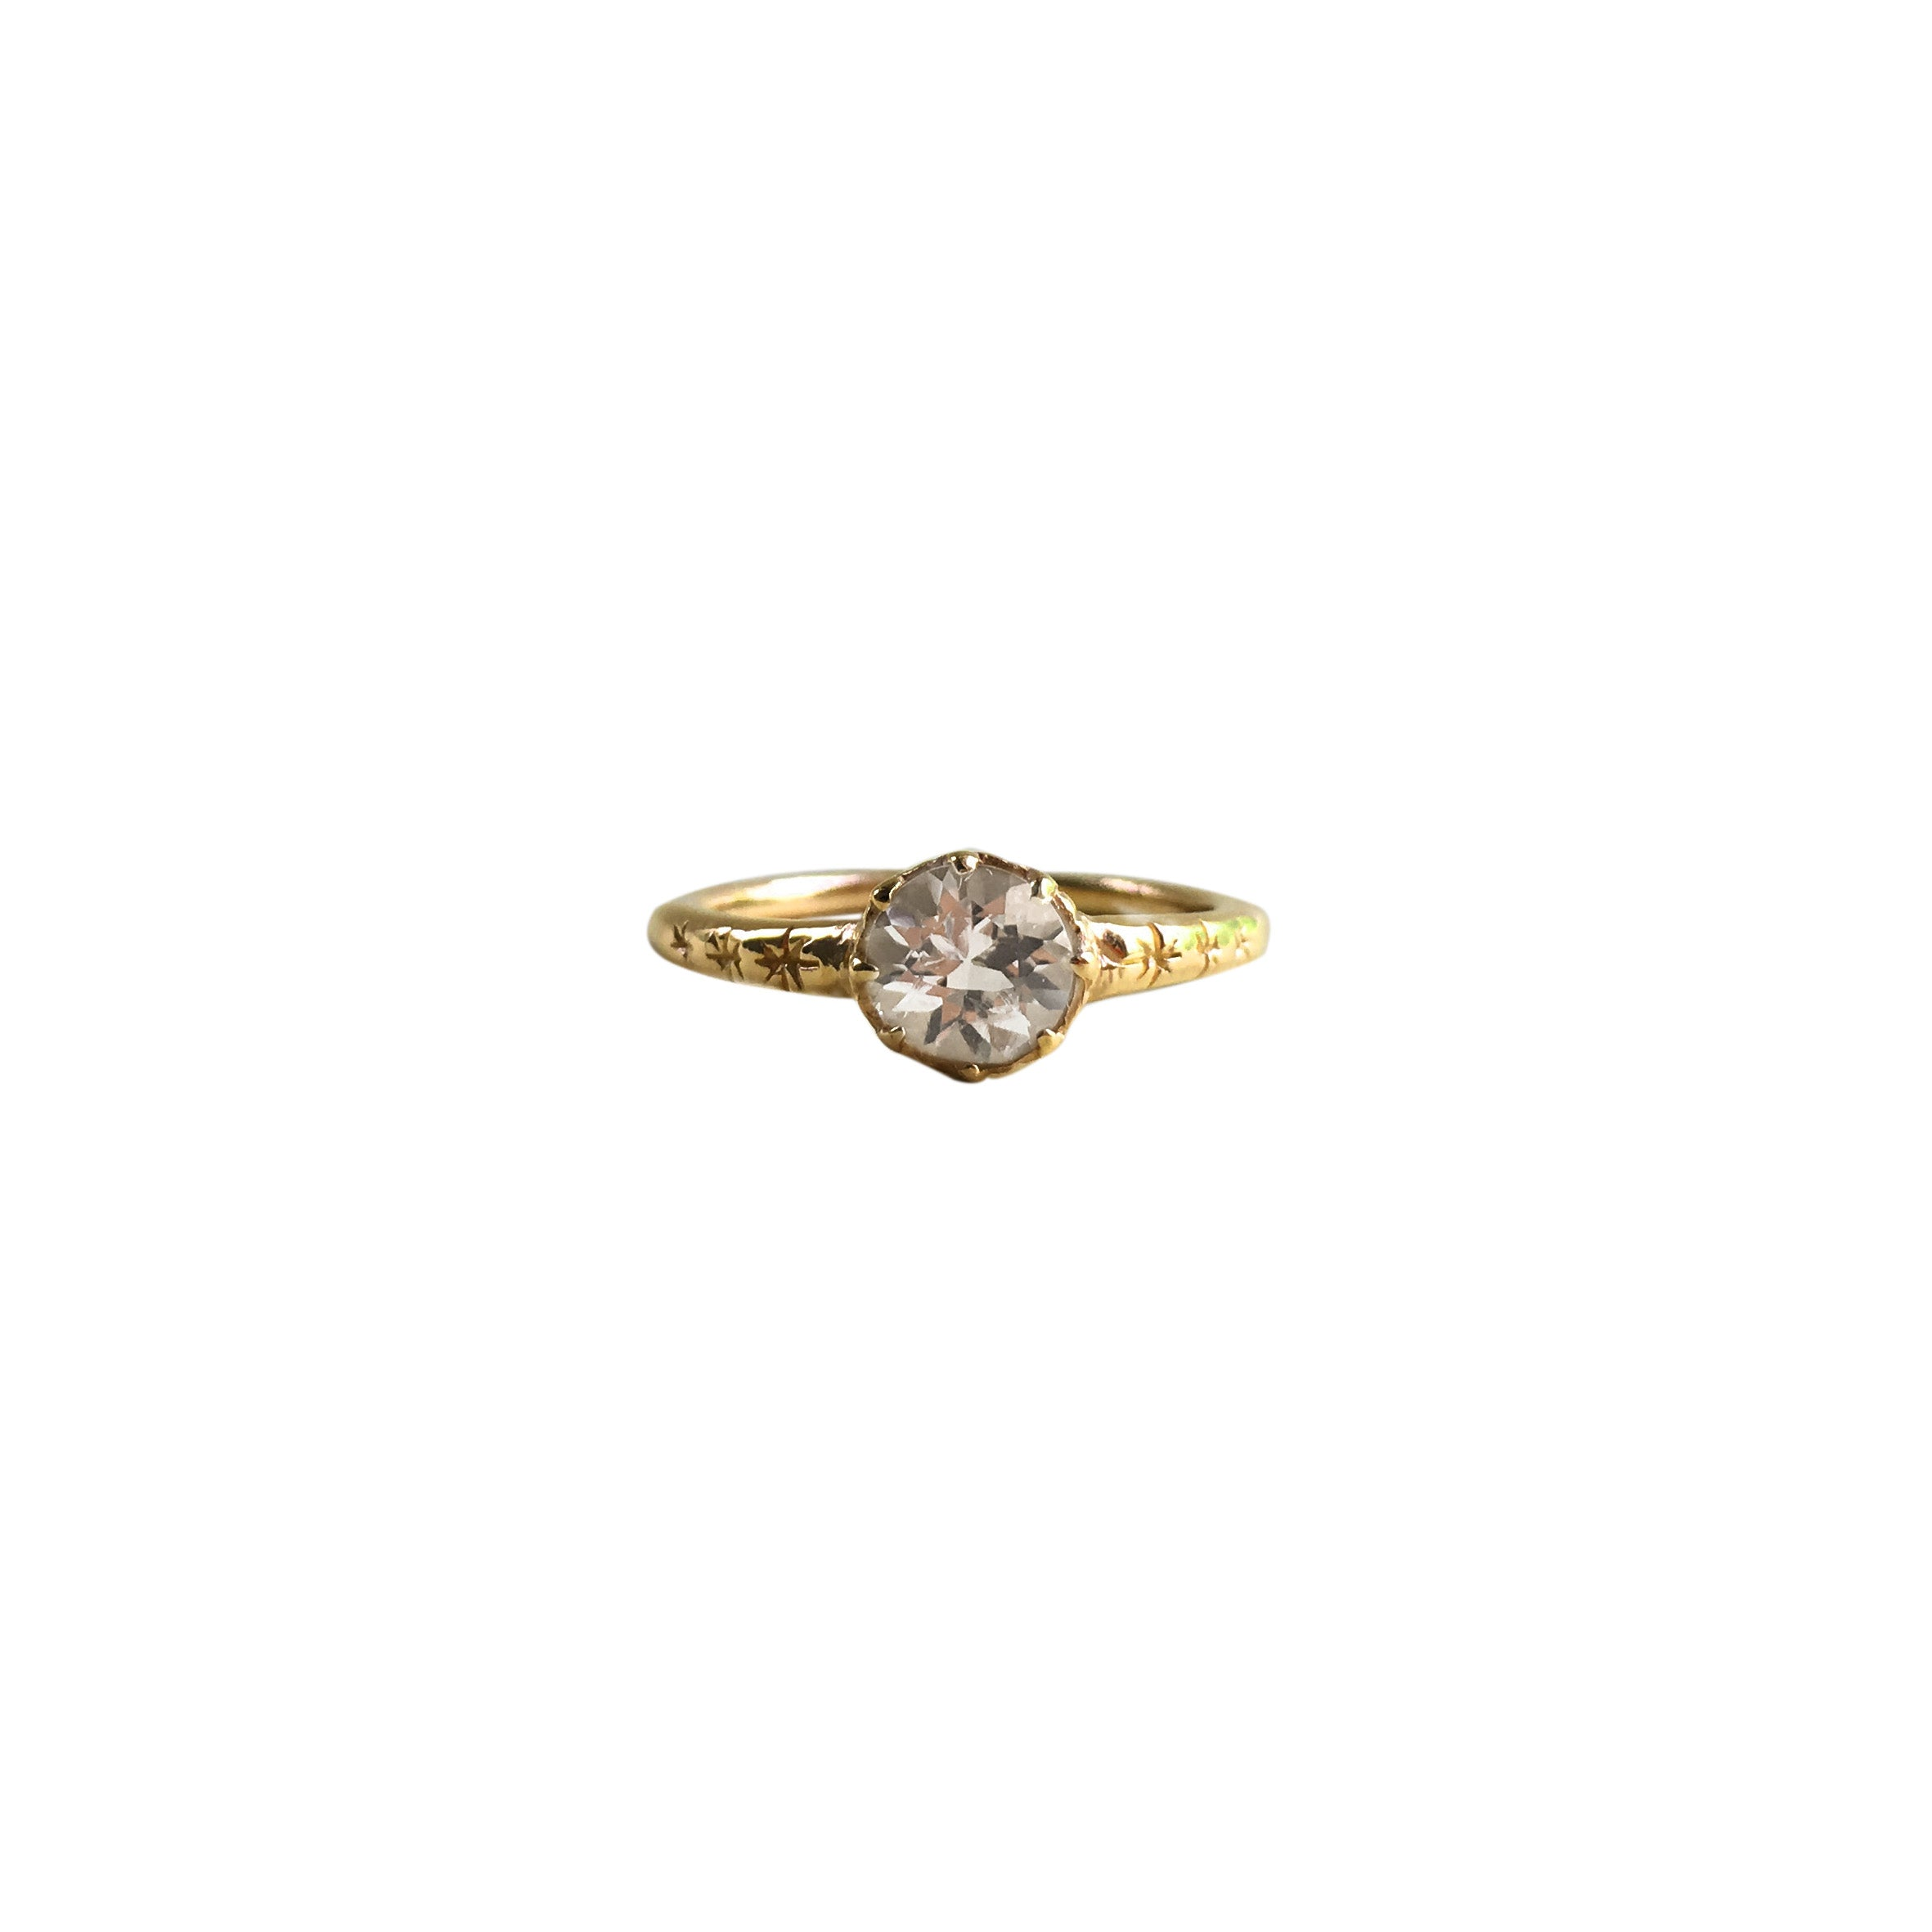 Starburst Solitaire Ring with White Topaz